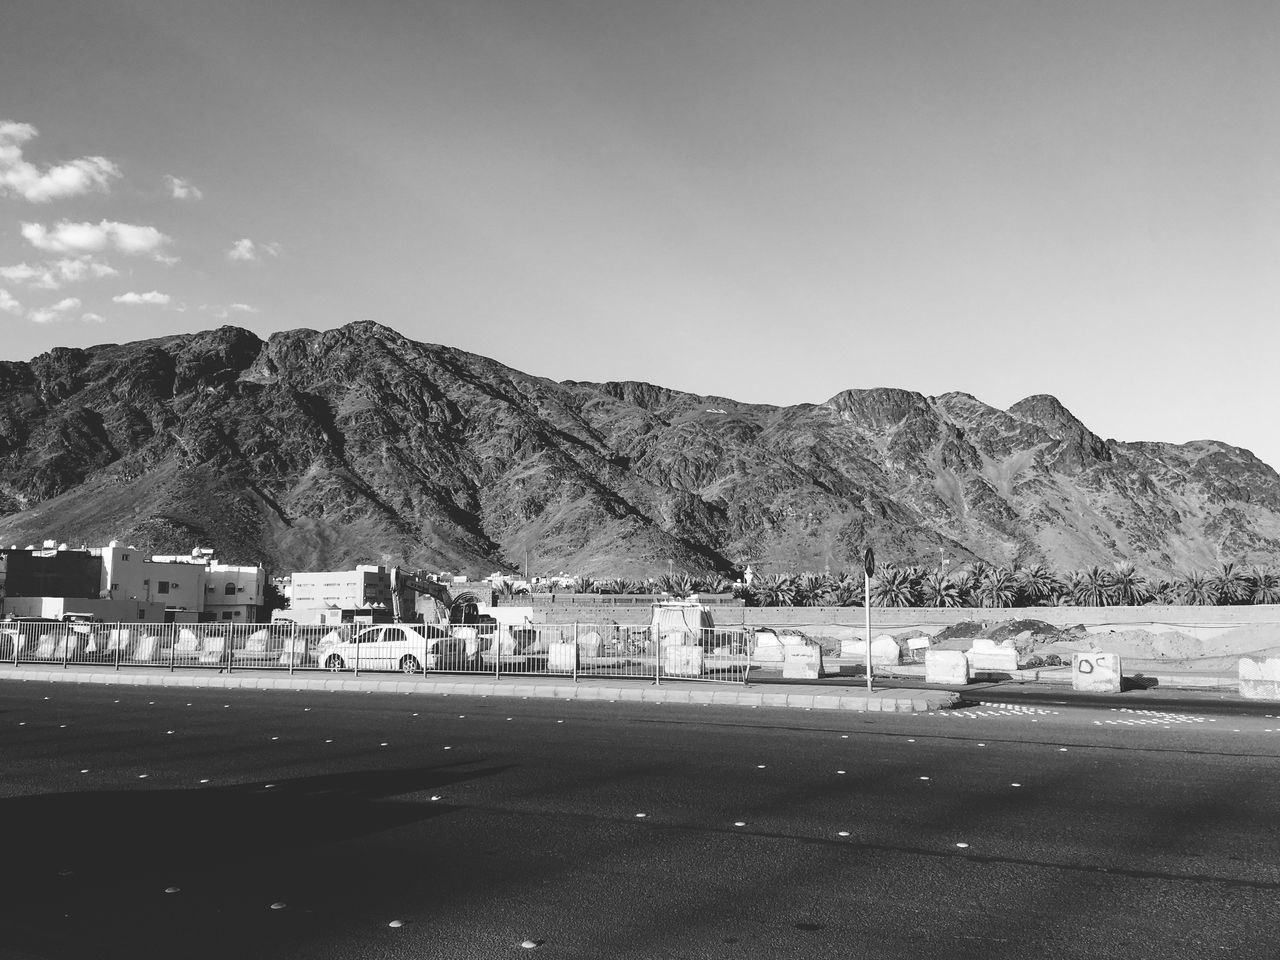 Airport Runway Architecture Beauty In Nature Black And White Blackandwhite Cloud - Sky Day Gas Light And Shadow Mountain Mountain Range Nature No People Outdoors Road Scenics Sky The City Light Travel Destinations